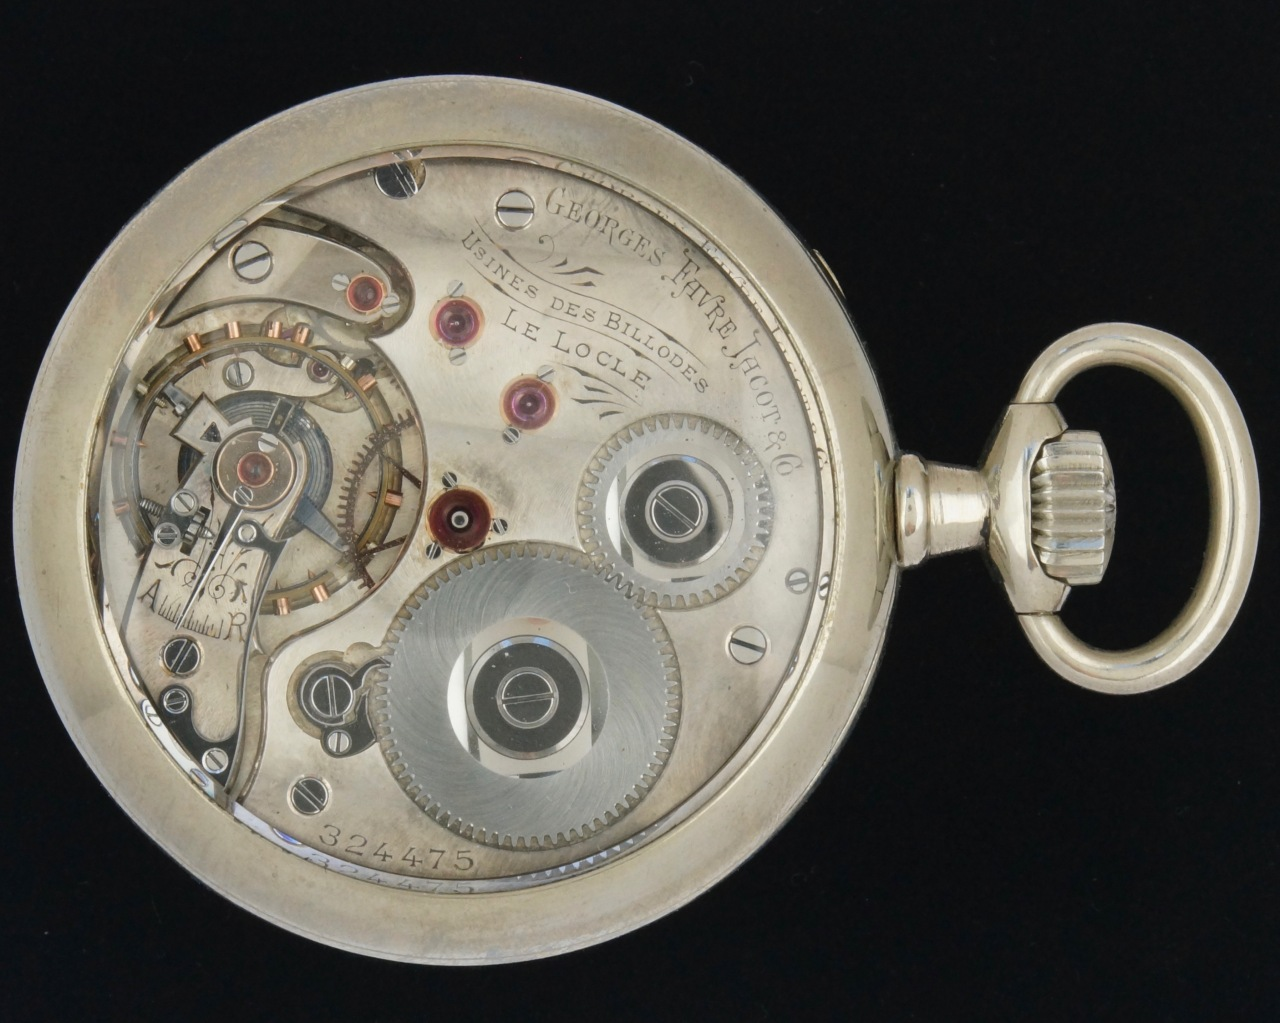 1475311239_georges_favre_jacot_zenith_usine_des_billodes_le_locle_montre_de_poche_chronometre_61-2